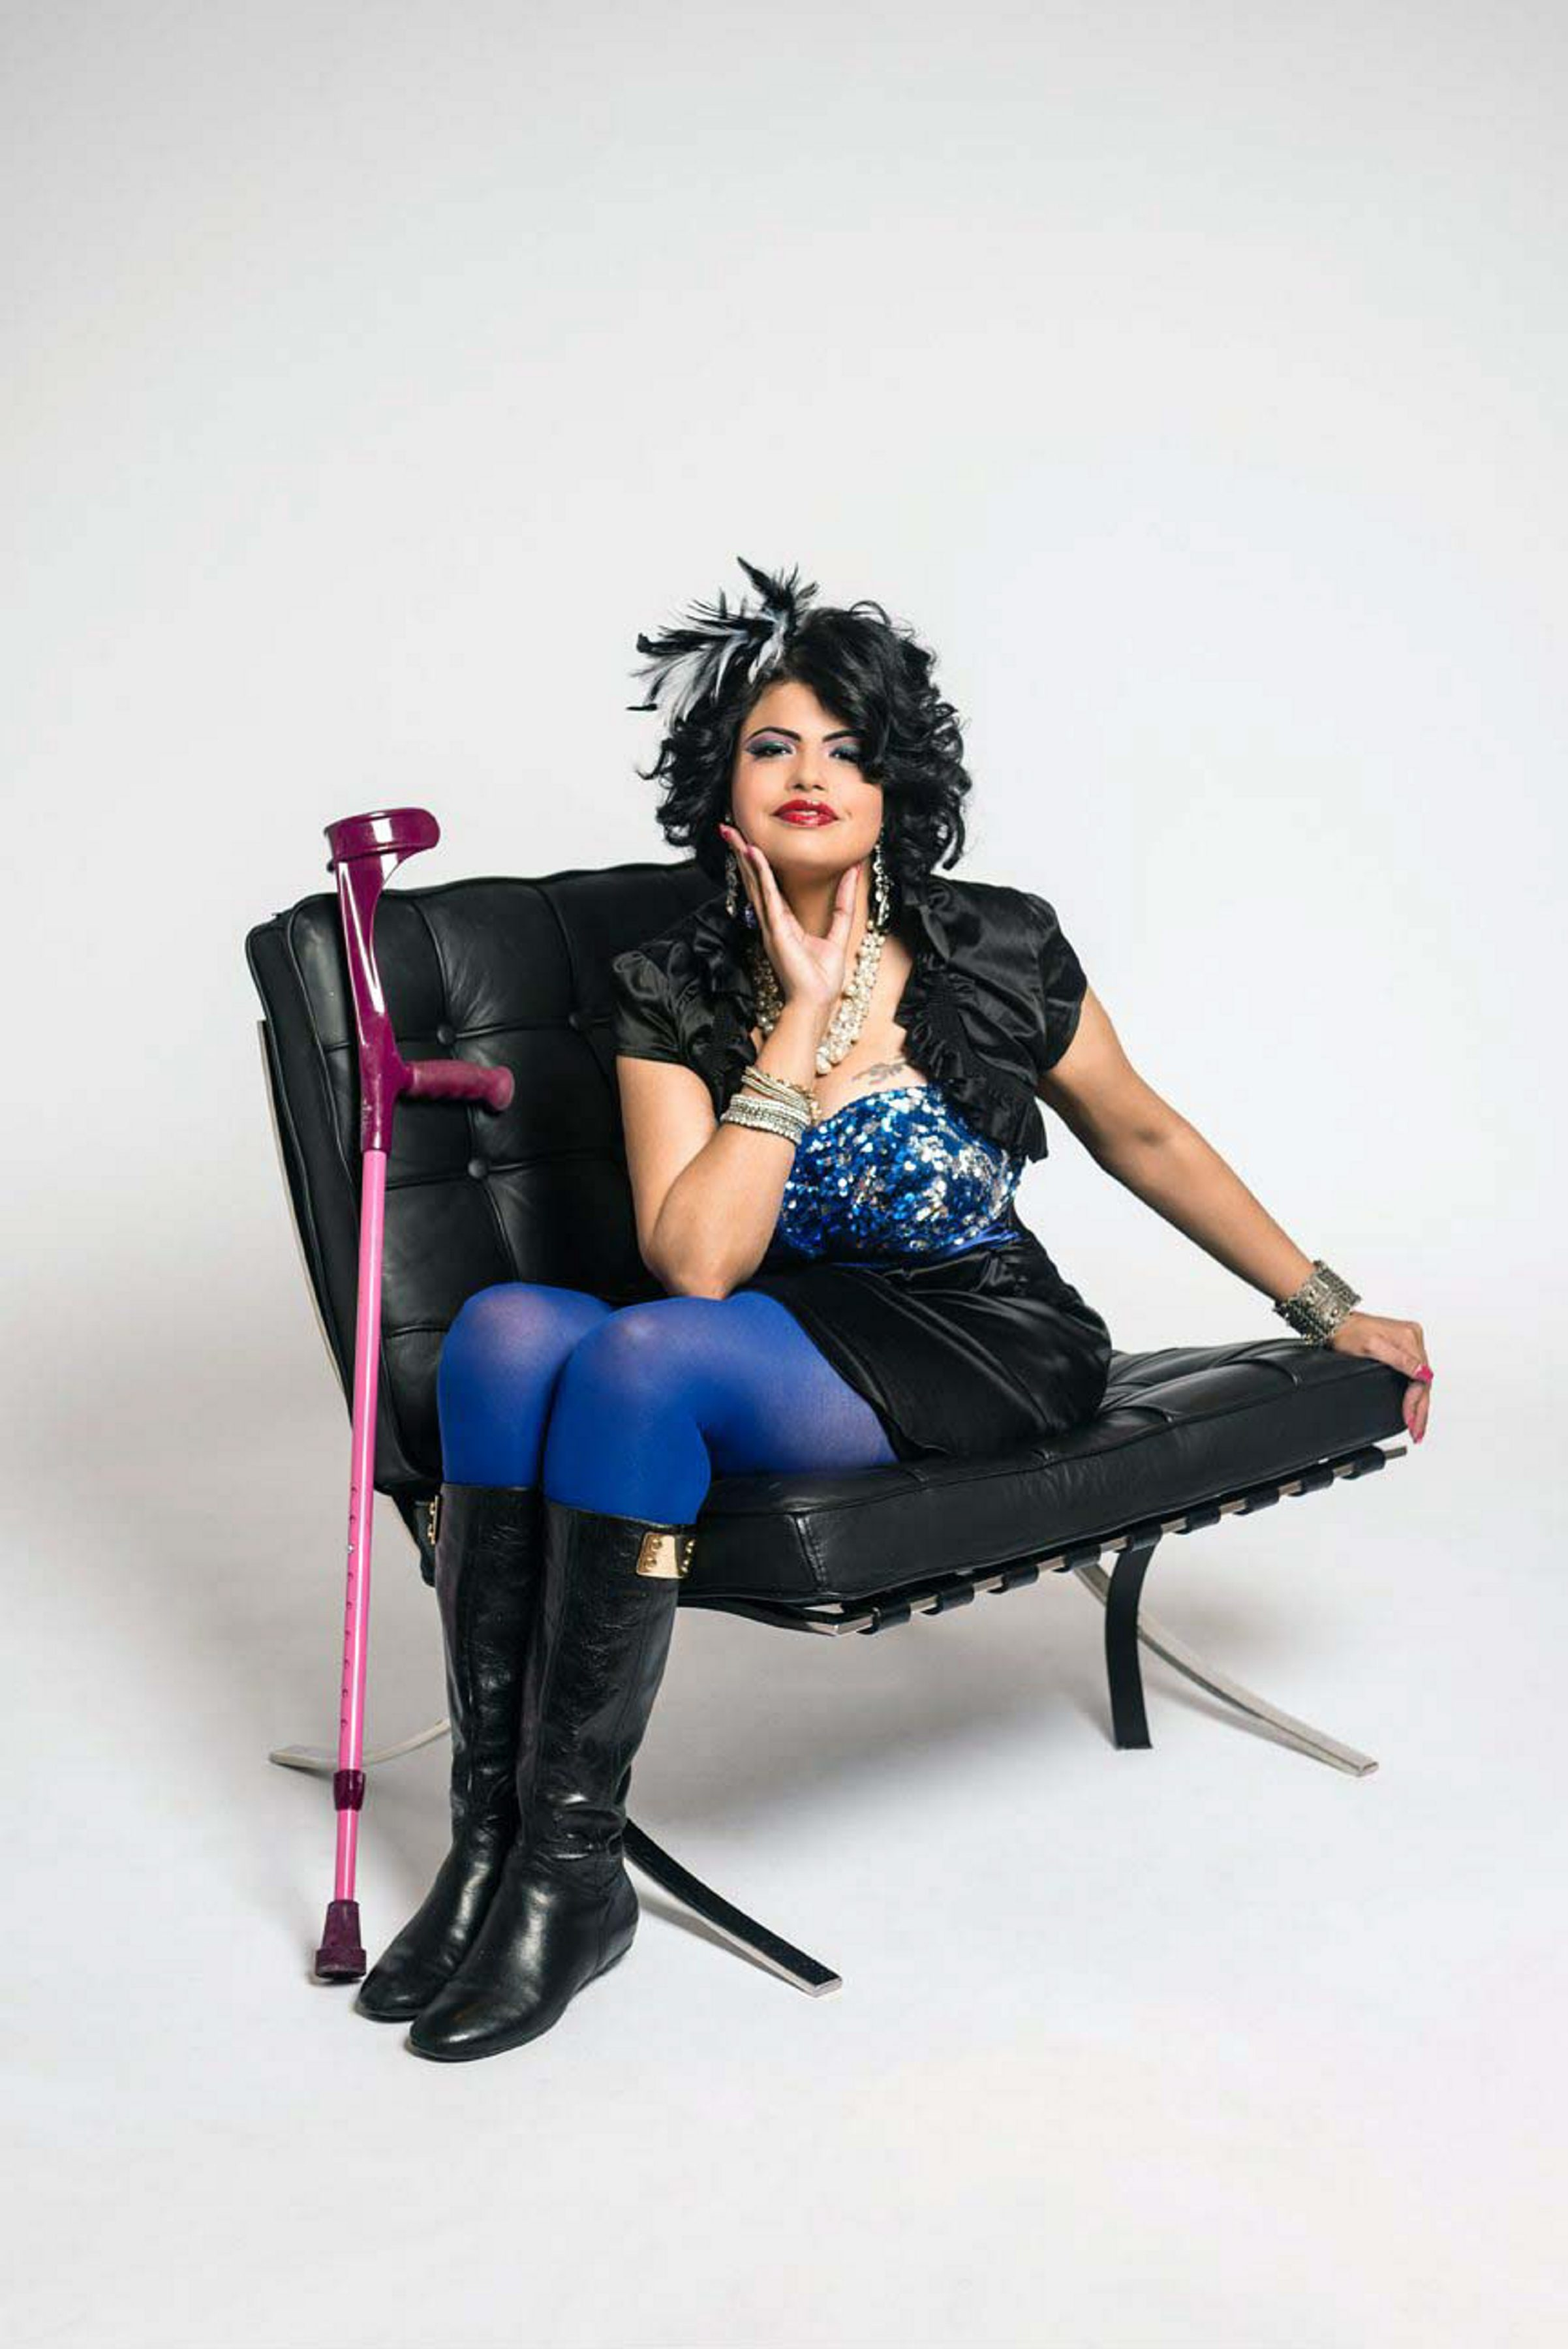 Jewel Kats wears her disability with pride – along with her feathers,  tattooed eye makeup s and hot-pink crutches.